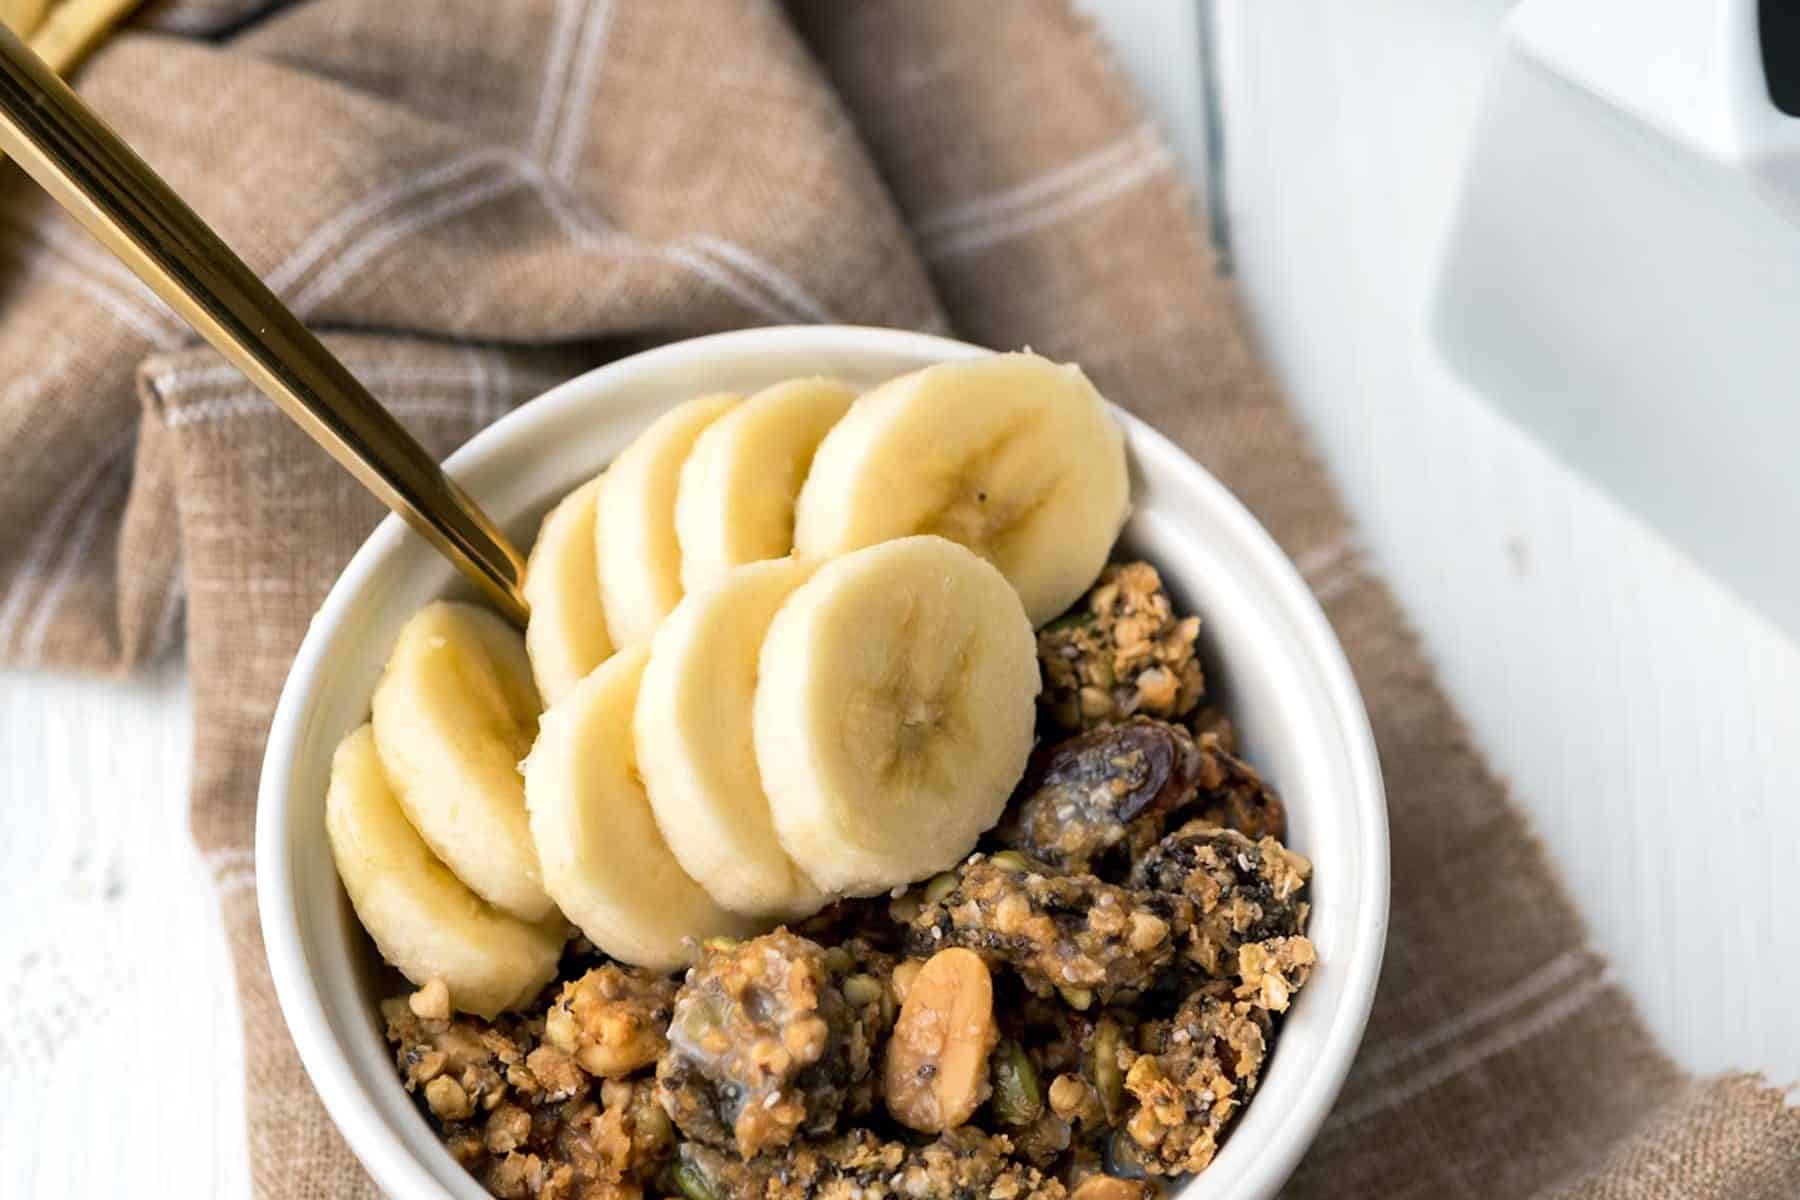 This snack is anything but boring! Peanut butter + Jelly (golden raisins) + buckwheat = PB&J Buckwheat Granola, that's oil-free and gluten-free.